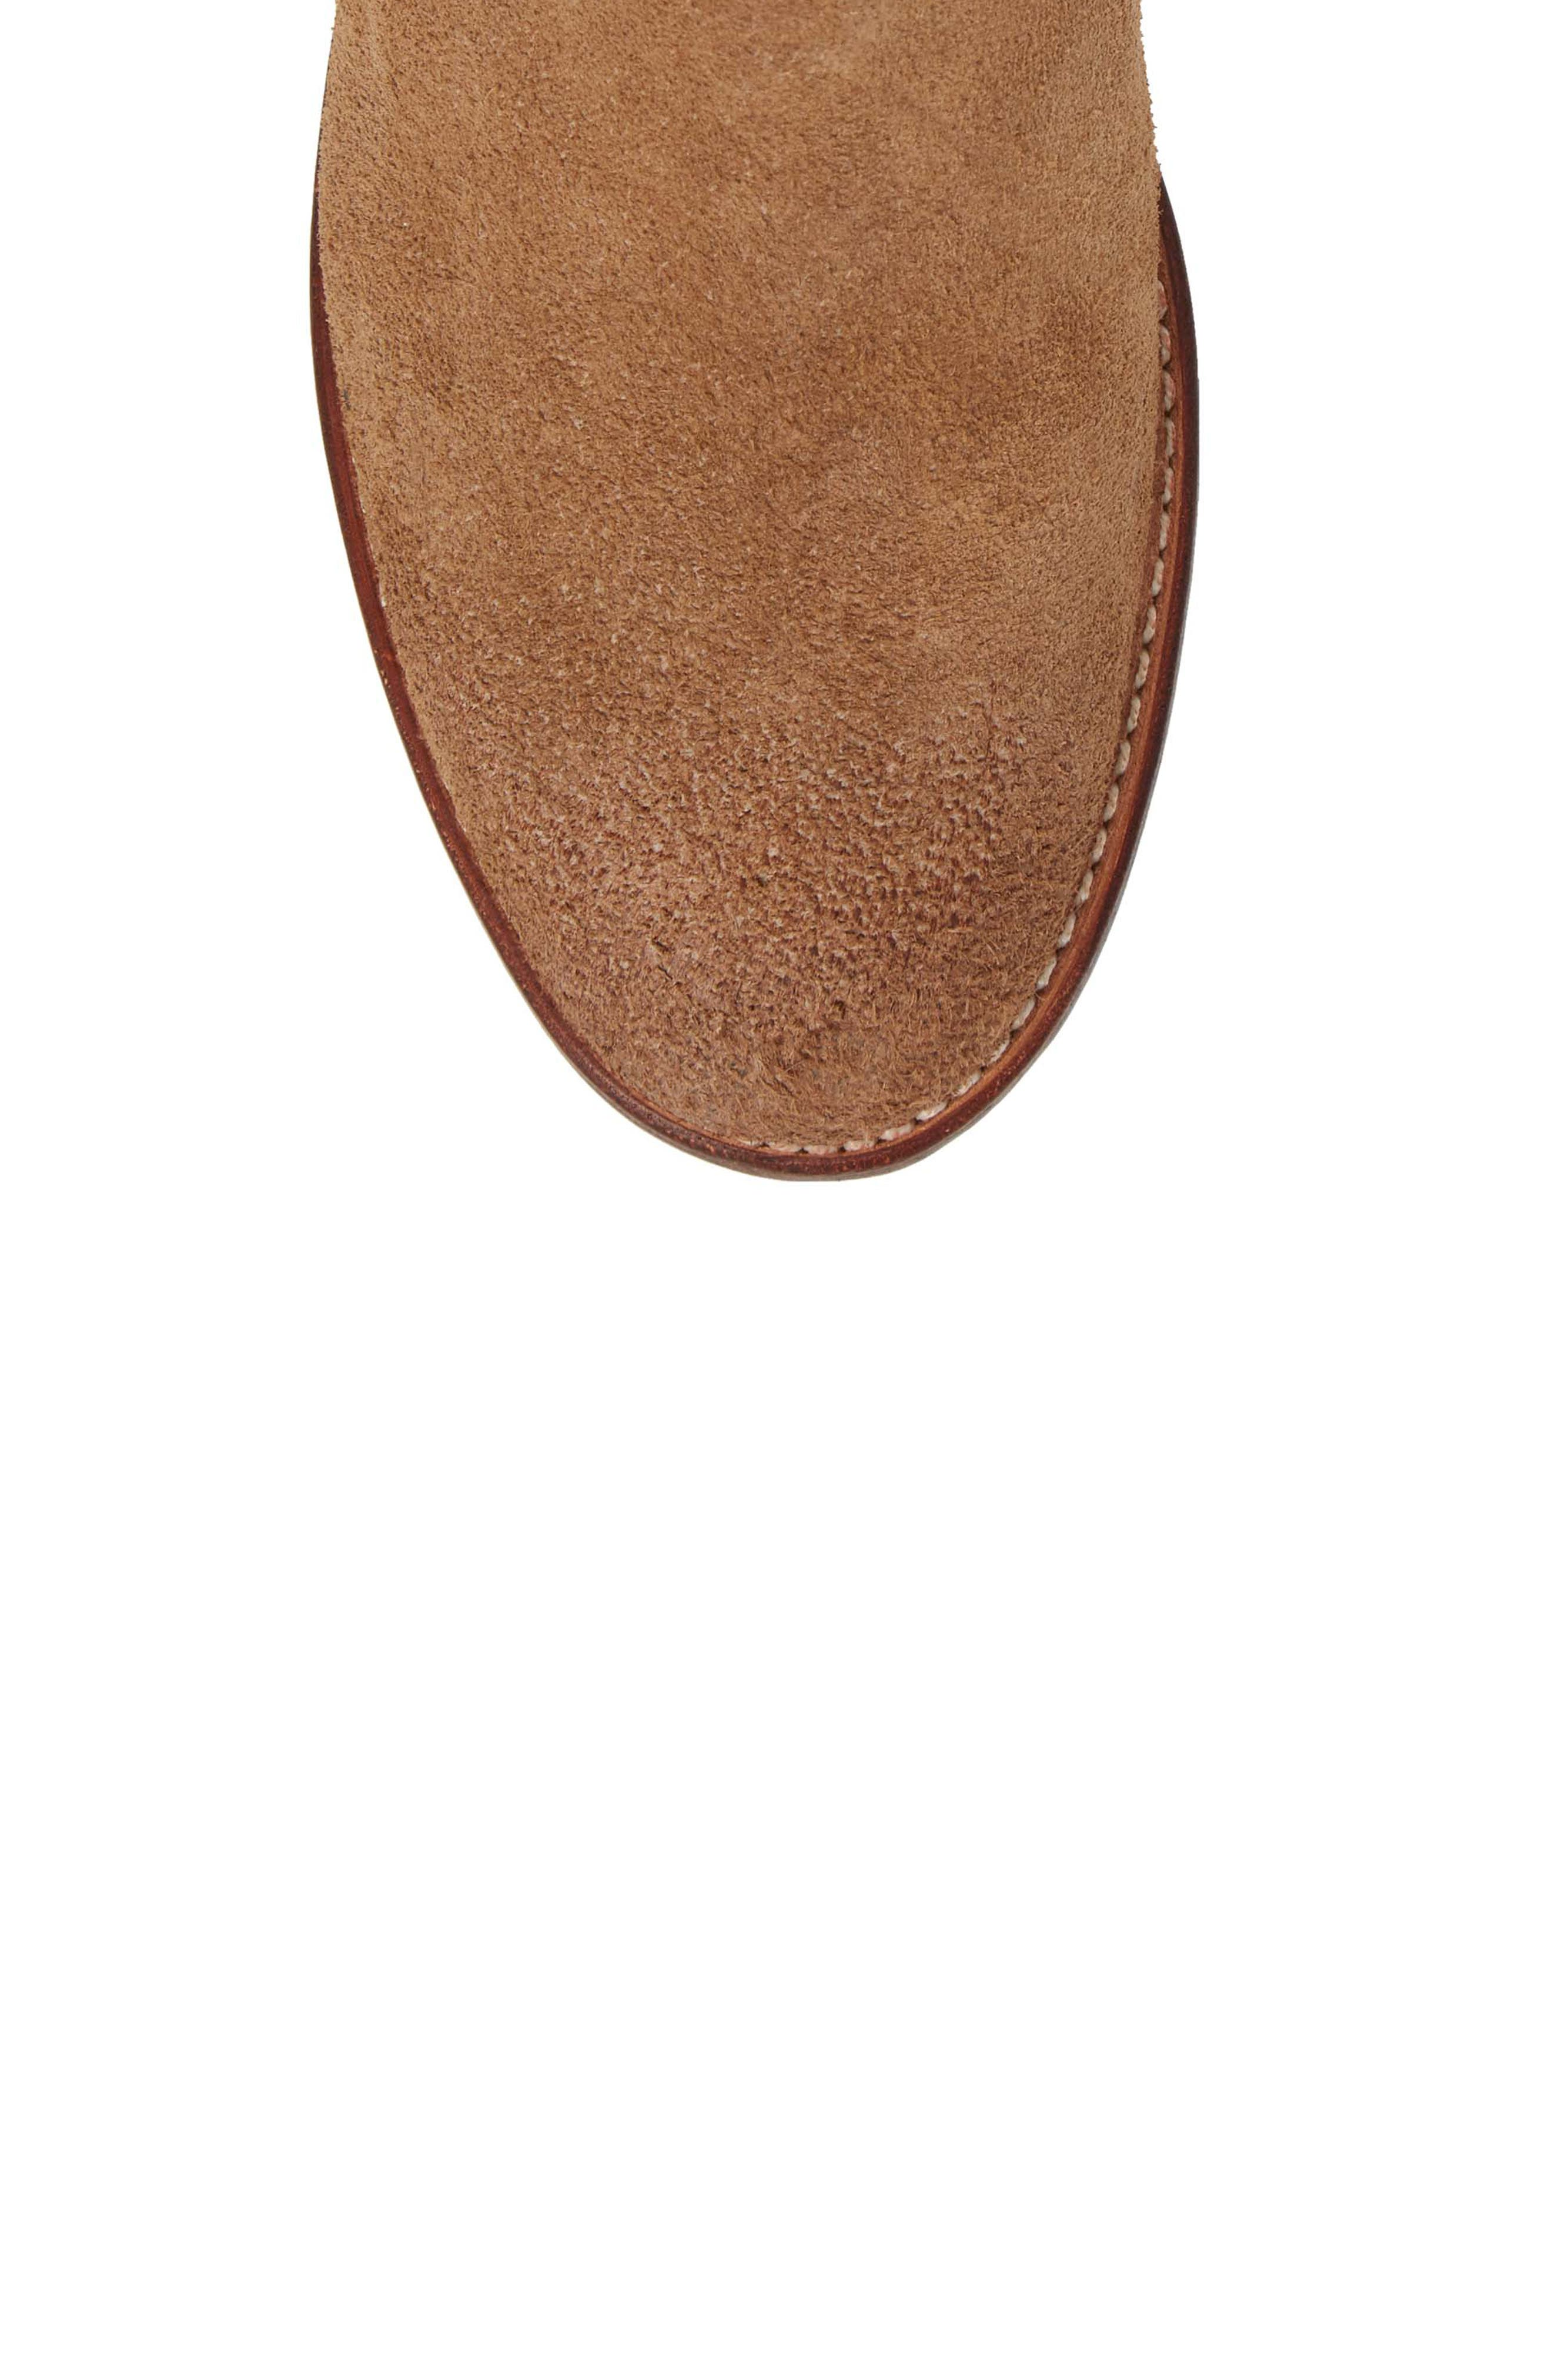 Ariat Maxwell Chelsea Boot,                             Alternate thumbnail 5, color,                             Amaretto Suede